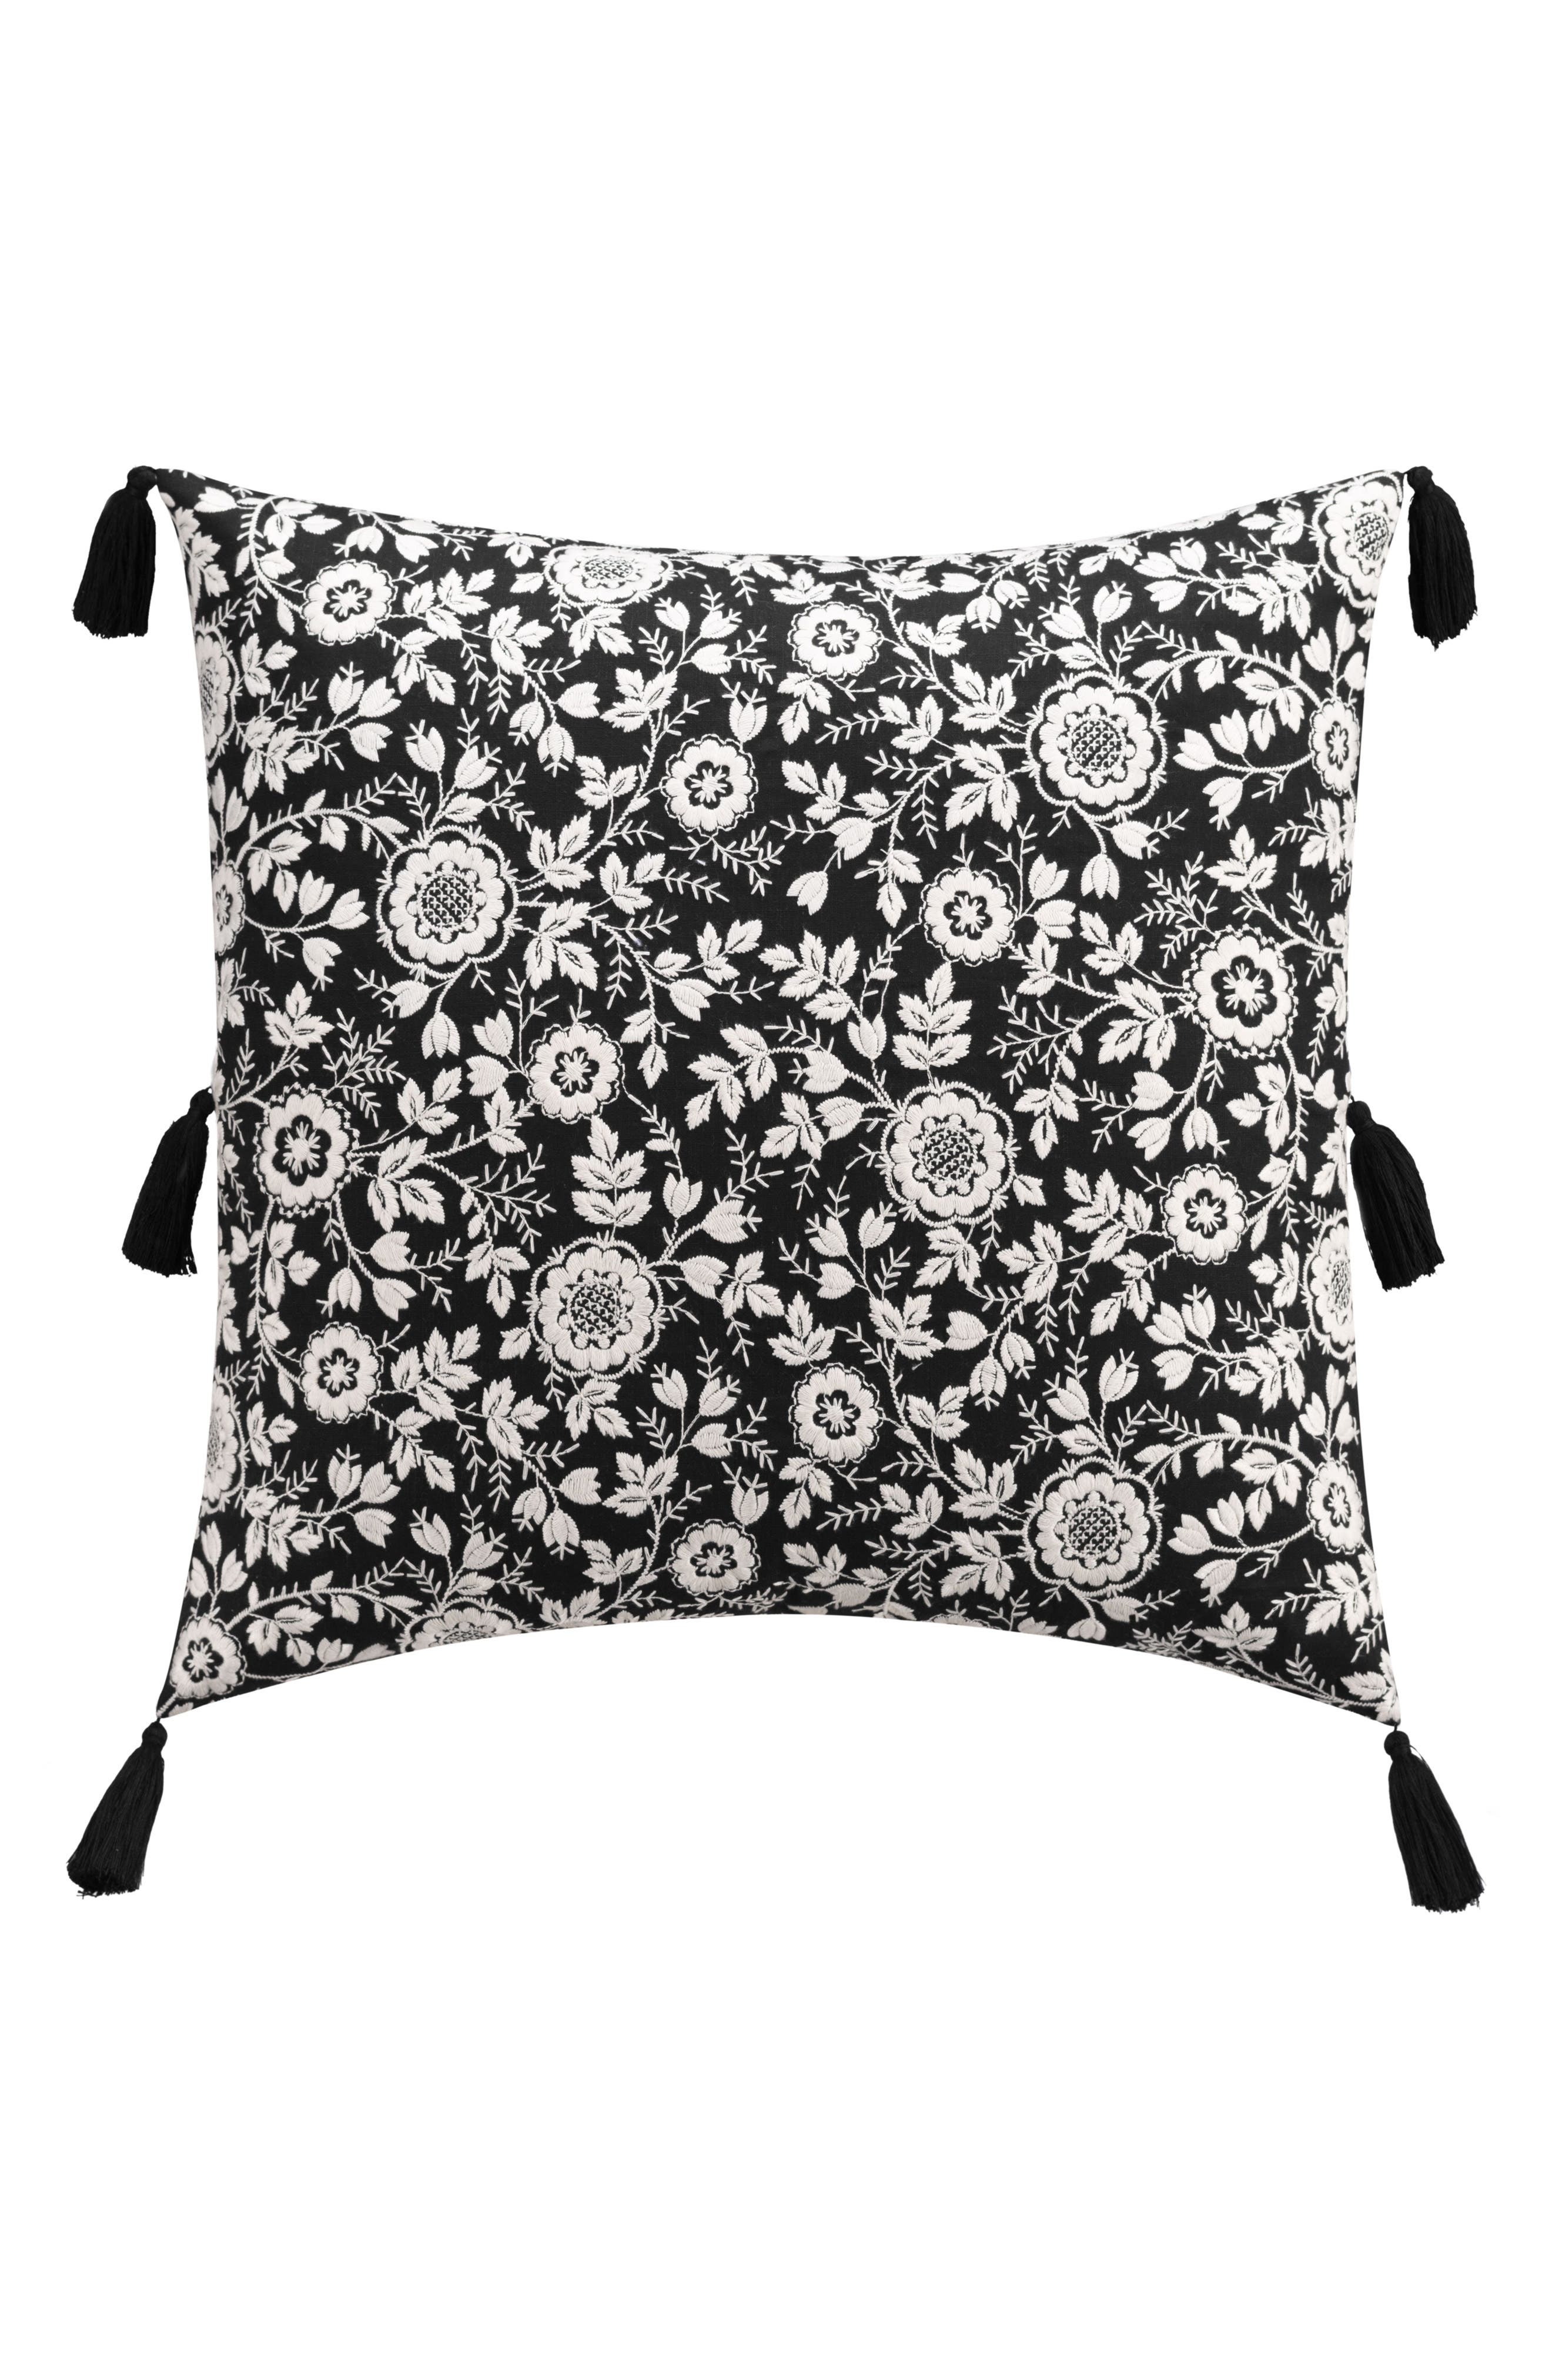 Image of: Cupcakes And Cashmere Folk Floral Euro Sham Nordstrom